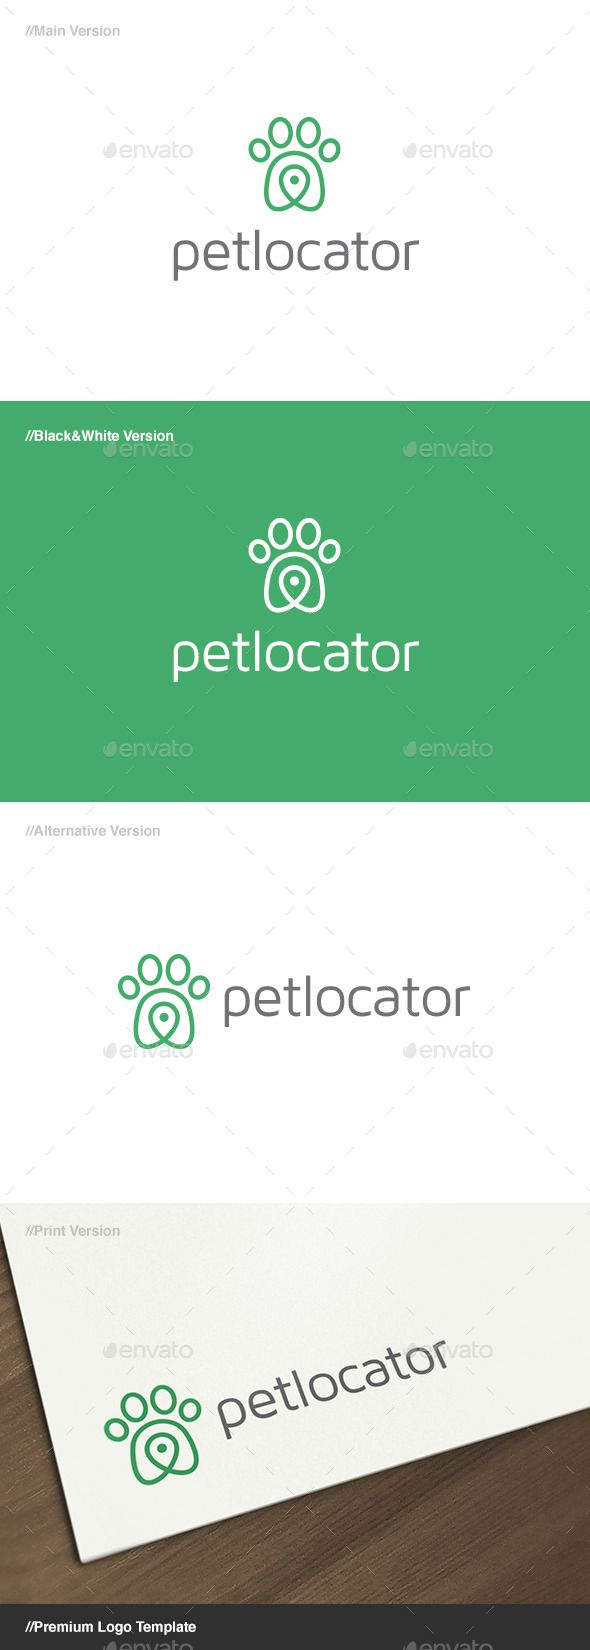 Pet Locator Logo — Vector EPS #software #app • Available here → https://graphicriver.net/item/pet-locator-logo/13021244?ref=pxcr